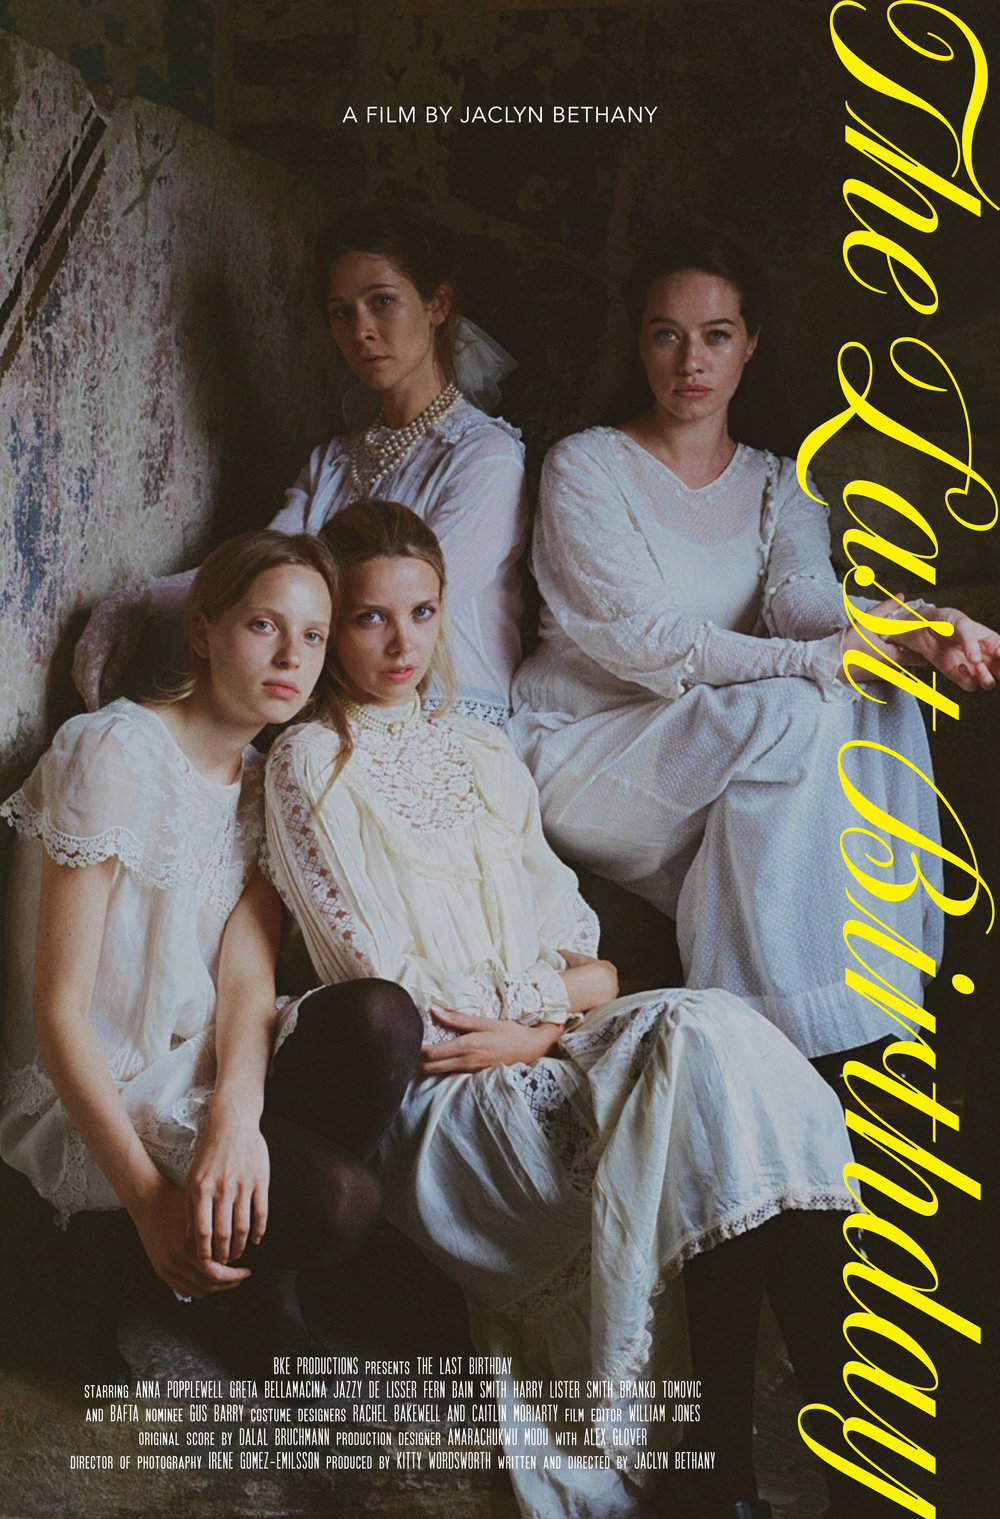 Greta Bellamacina, Fern Bain Smith, Jazzy De Lisser and Anna Popplewell as sisters for Jacyln Bethany's new film The Last Birthday.